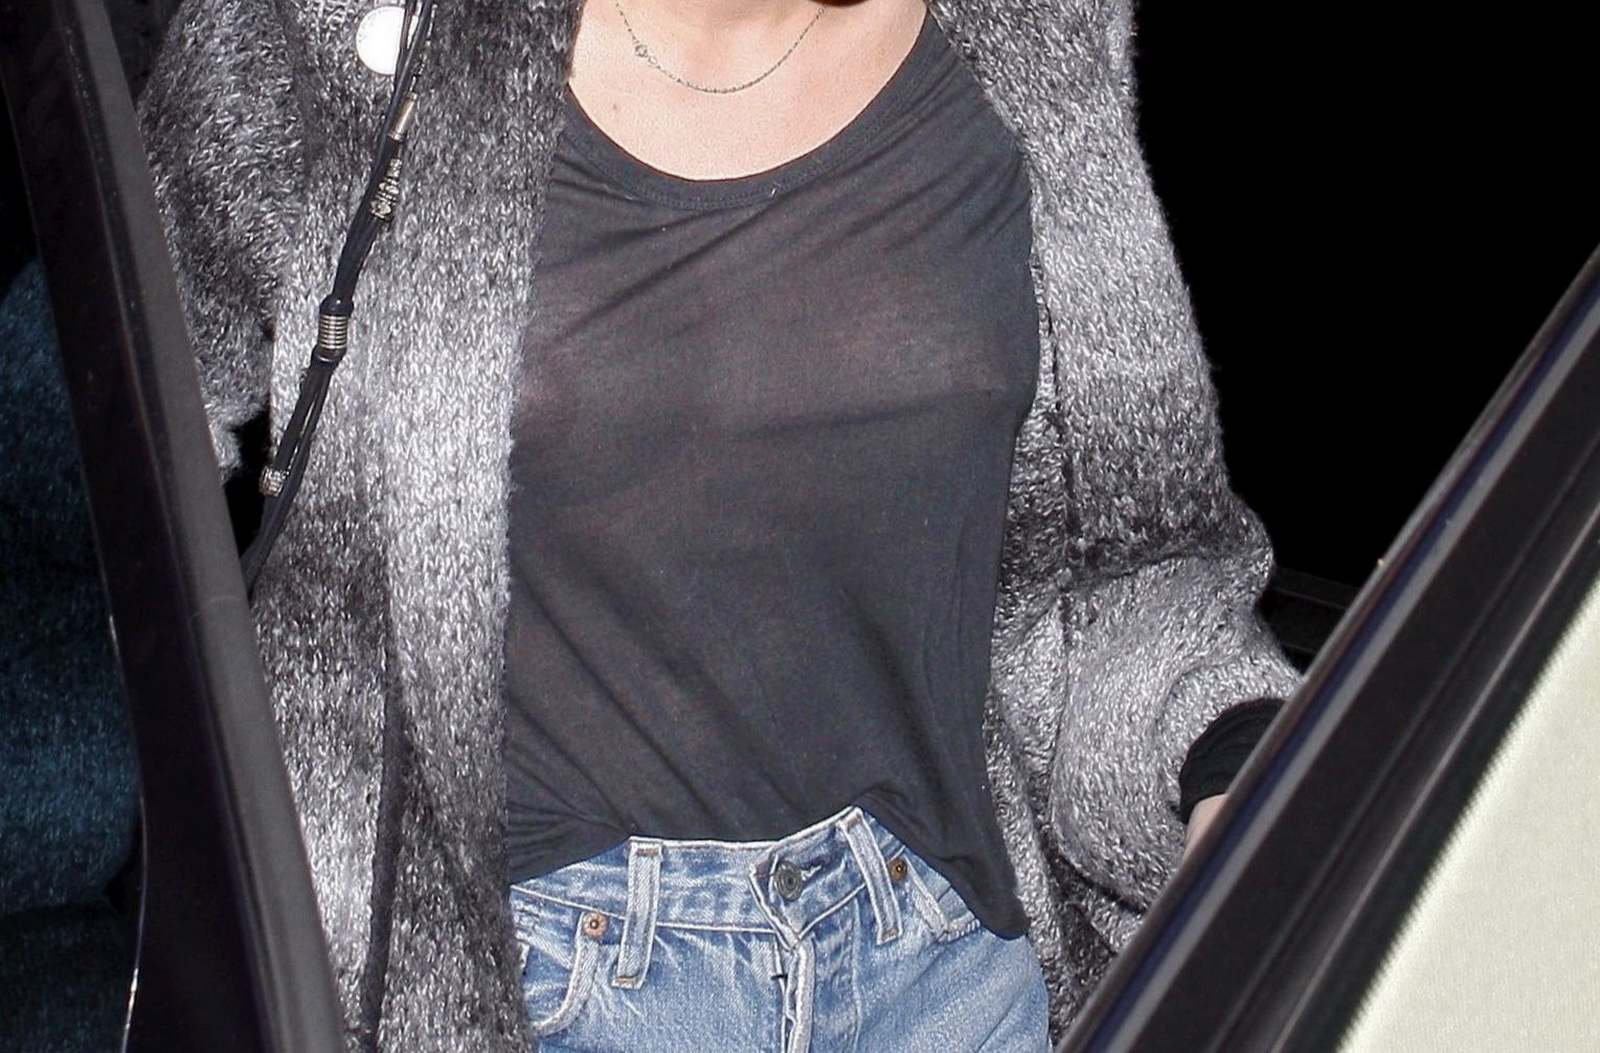 http://3.bp.blogspot.com/-MeoufP7Uilw/Tx1Rwg6rFwI/AAAAAAAADj4/vwQHyoerDkU/s1600/Miley_Cyrus_in_see_through_blouse_show_nice_breast_at_Casa_Vega_restaurant_in_Sherman_Oaks_2.JPG